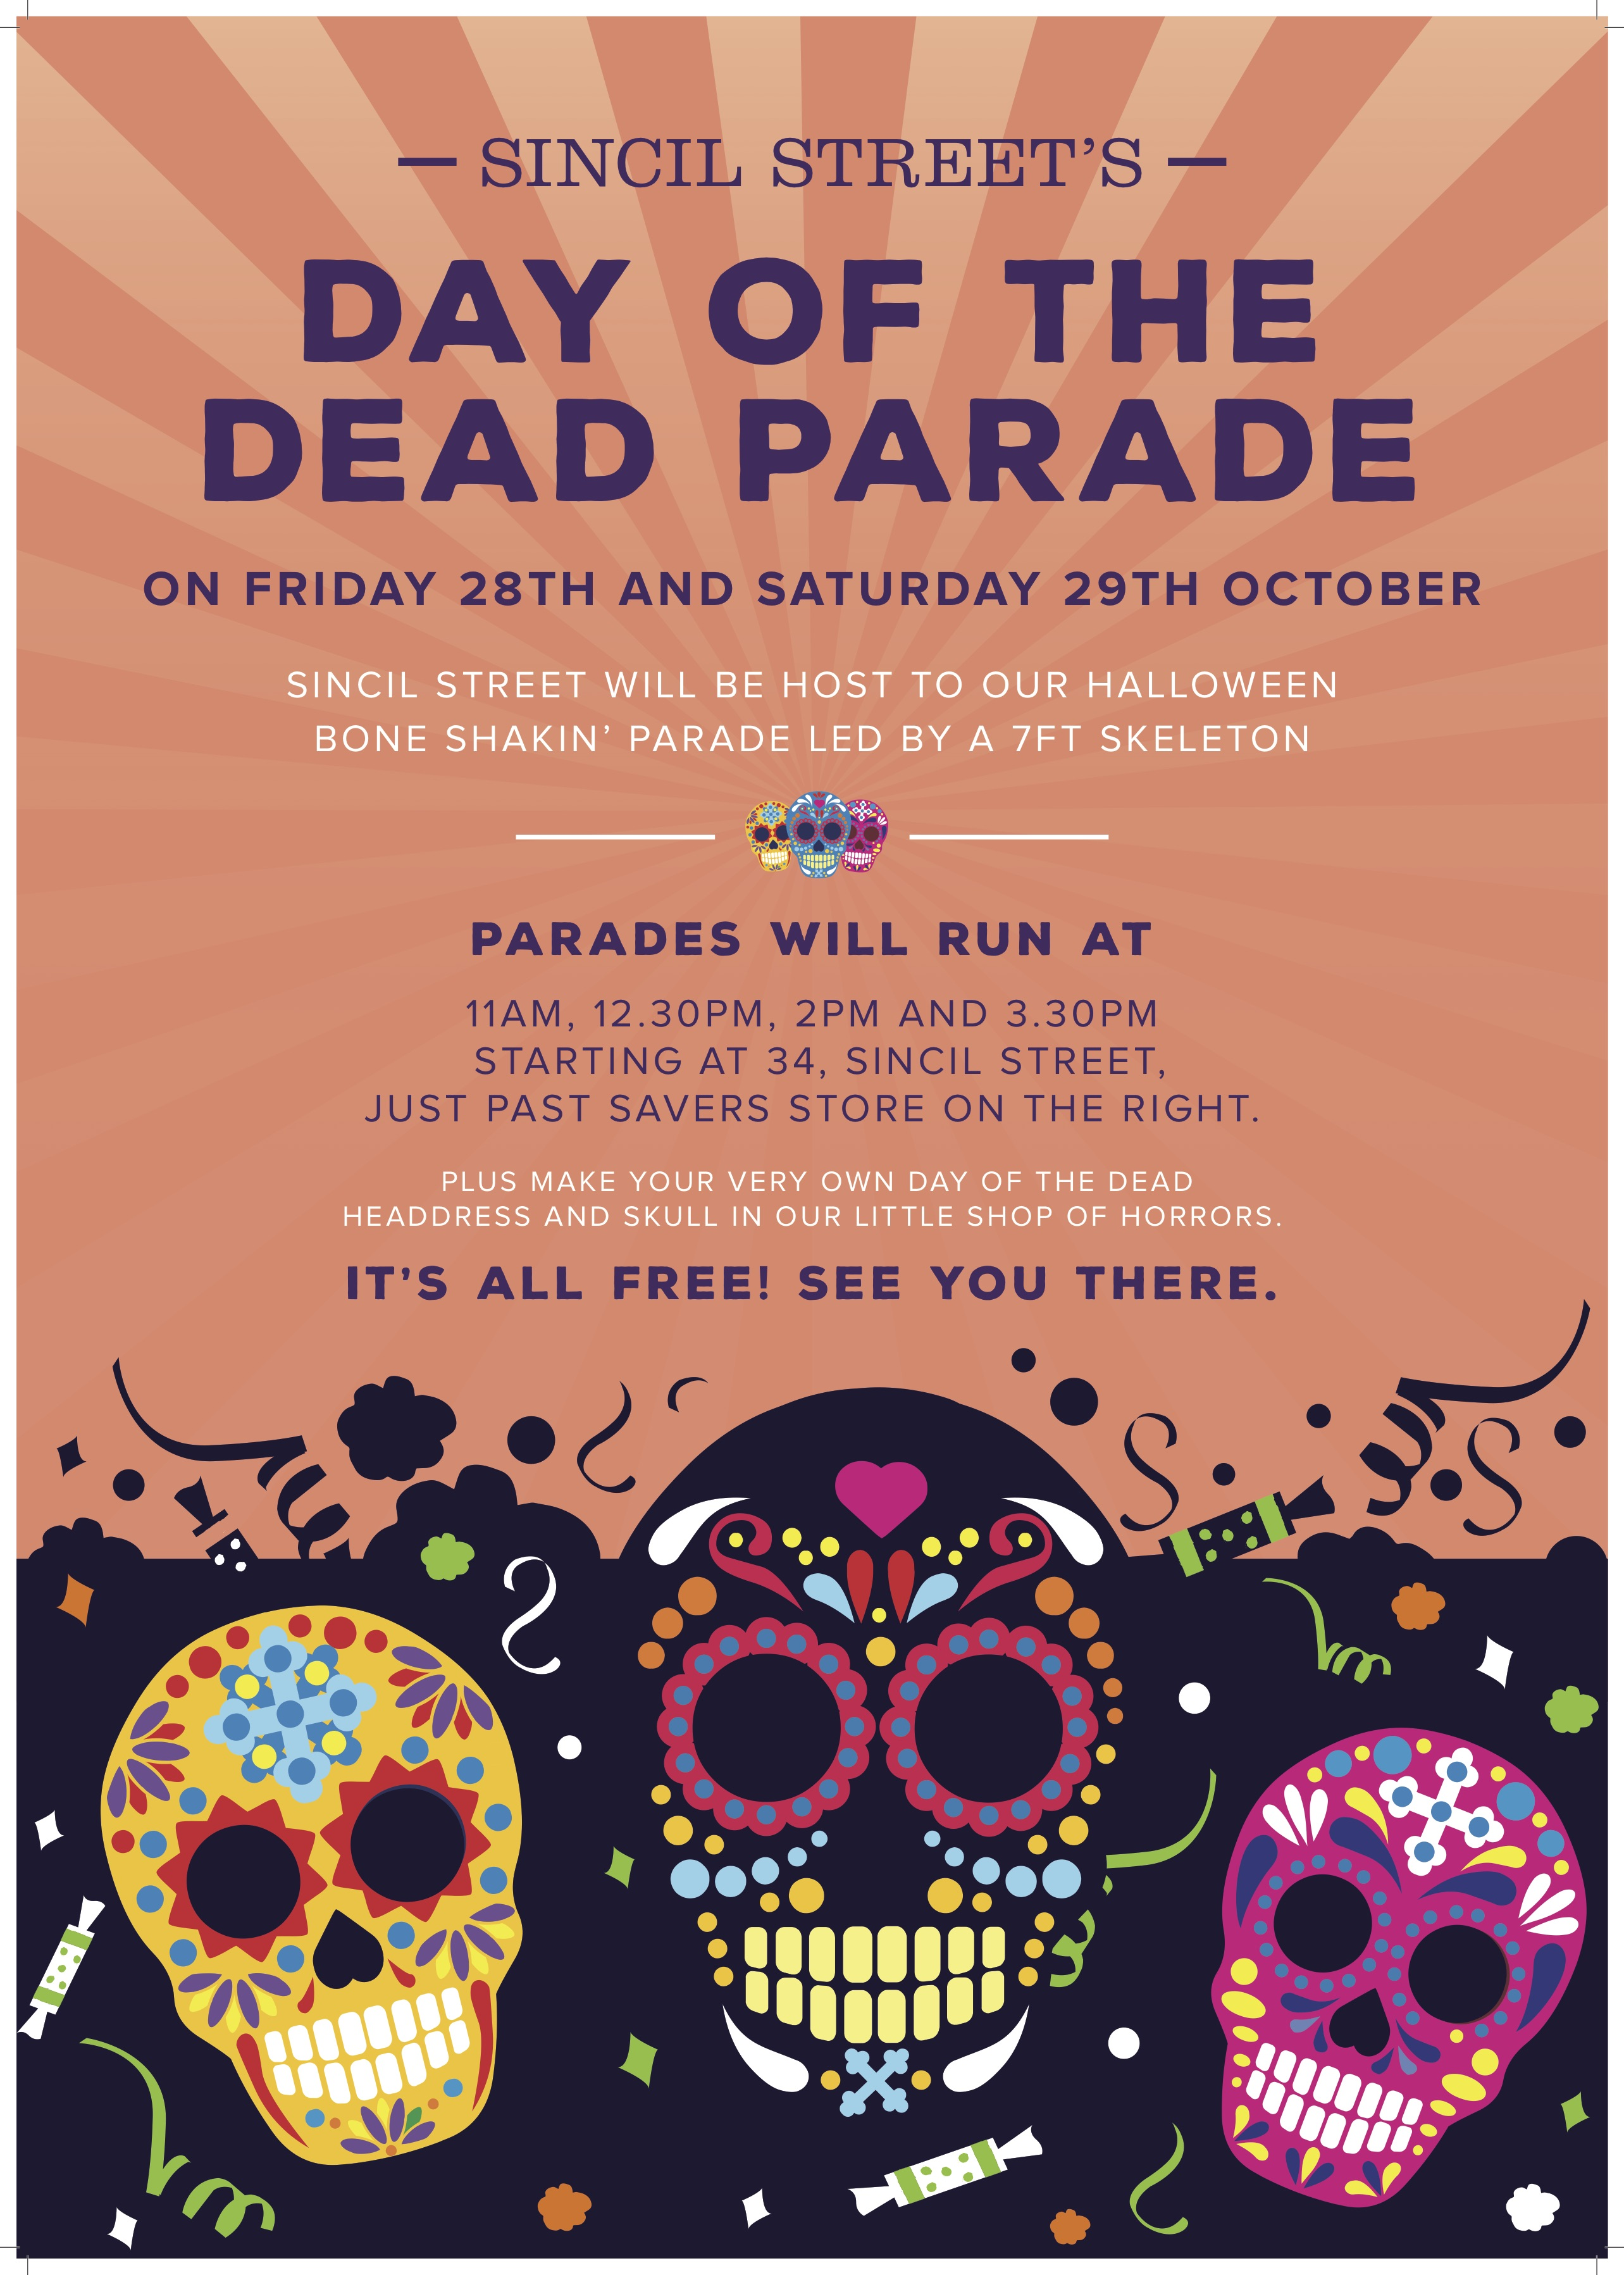 The parade takes place on Friday, October 28 and Saturday, October 19.